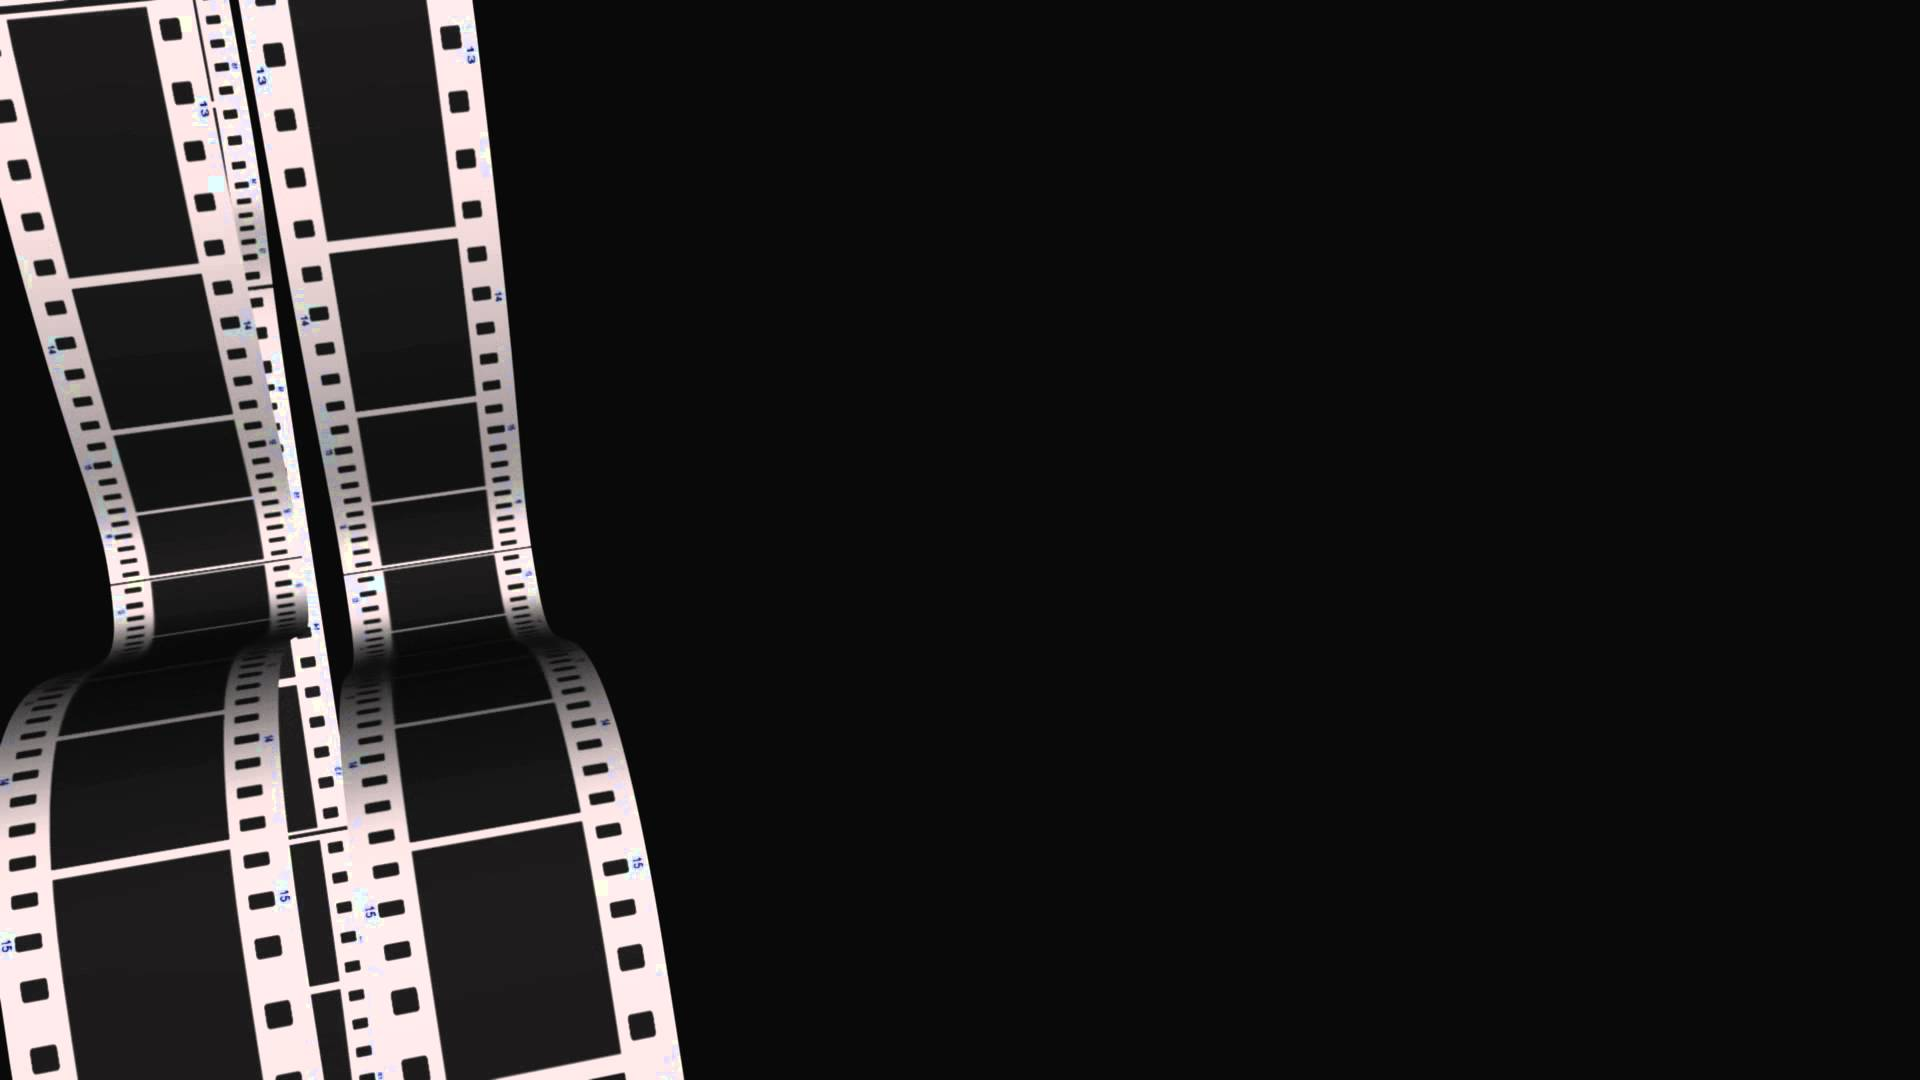 Download   35mm Film Reels   Theatre Animated Background 1920x1080